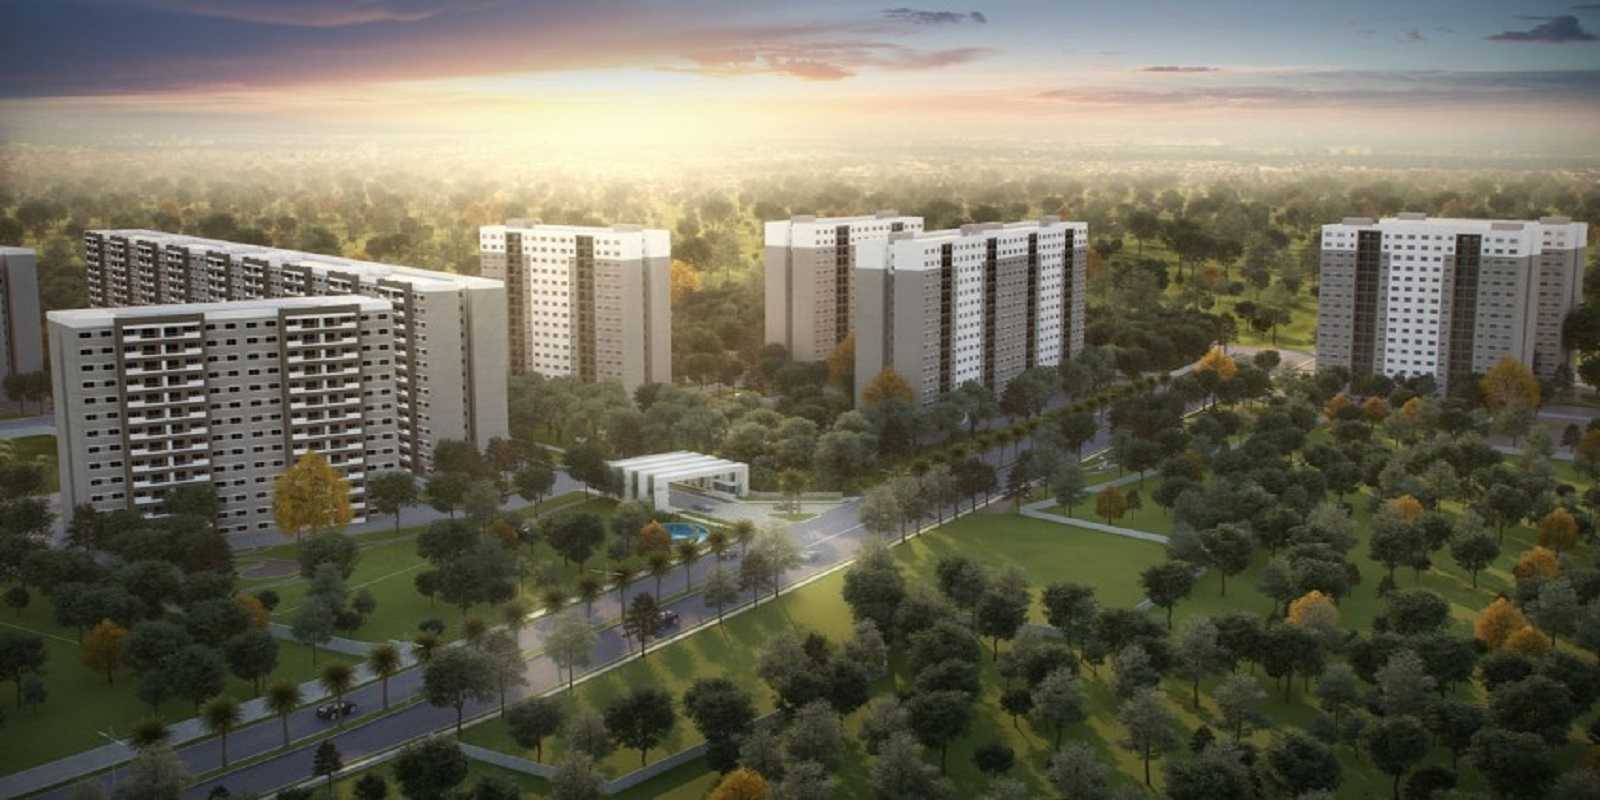 sobha tropical greens phase 10 wing 46.php project large image2